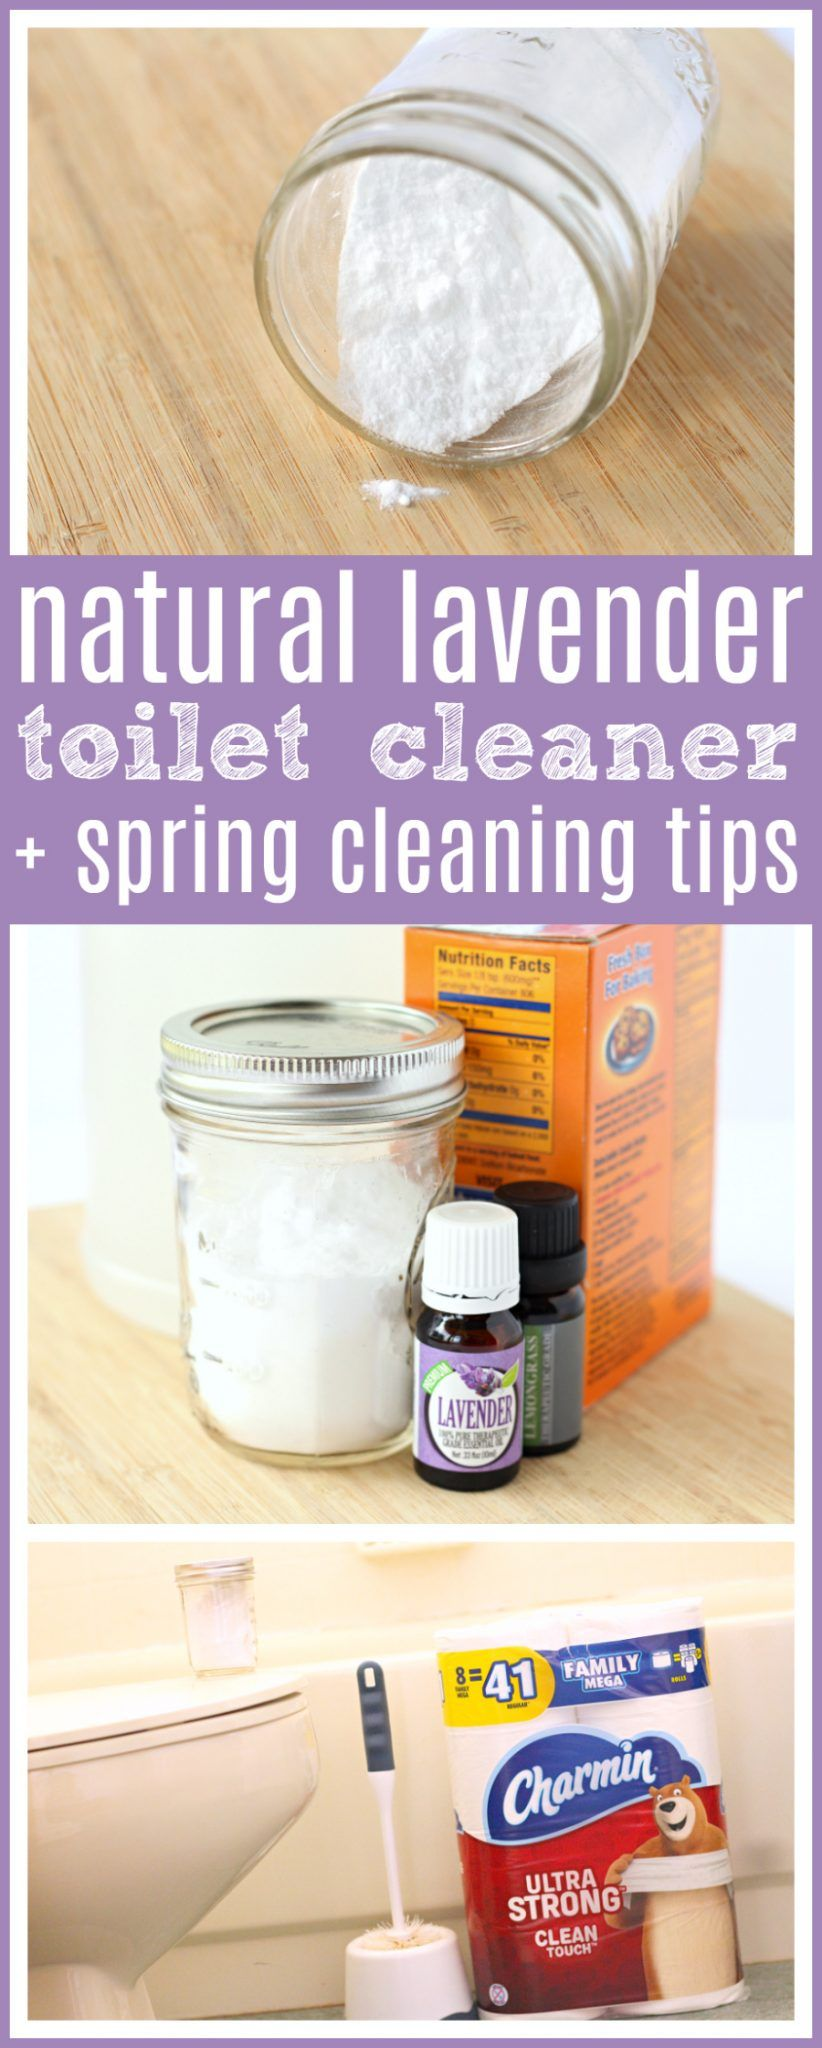 Diy Natural Toilet Cleaner Spring Cleaning Tips Cleaning Hacks Spring Cleaning Natural Toilet Cleaner